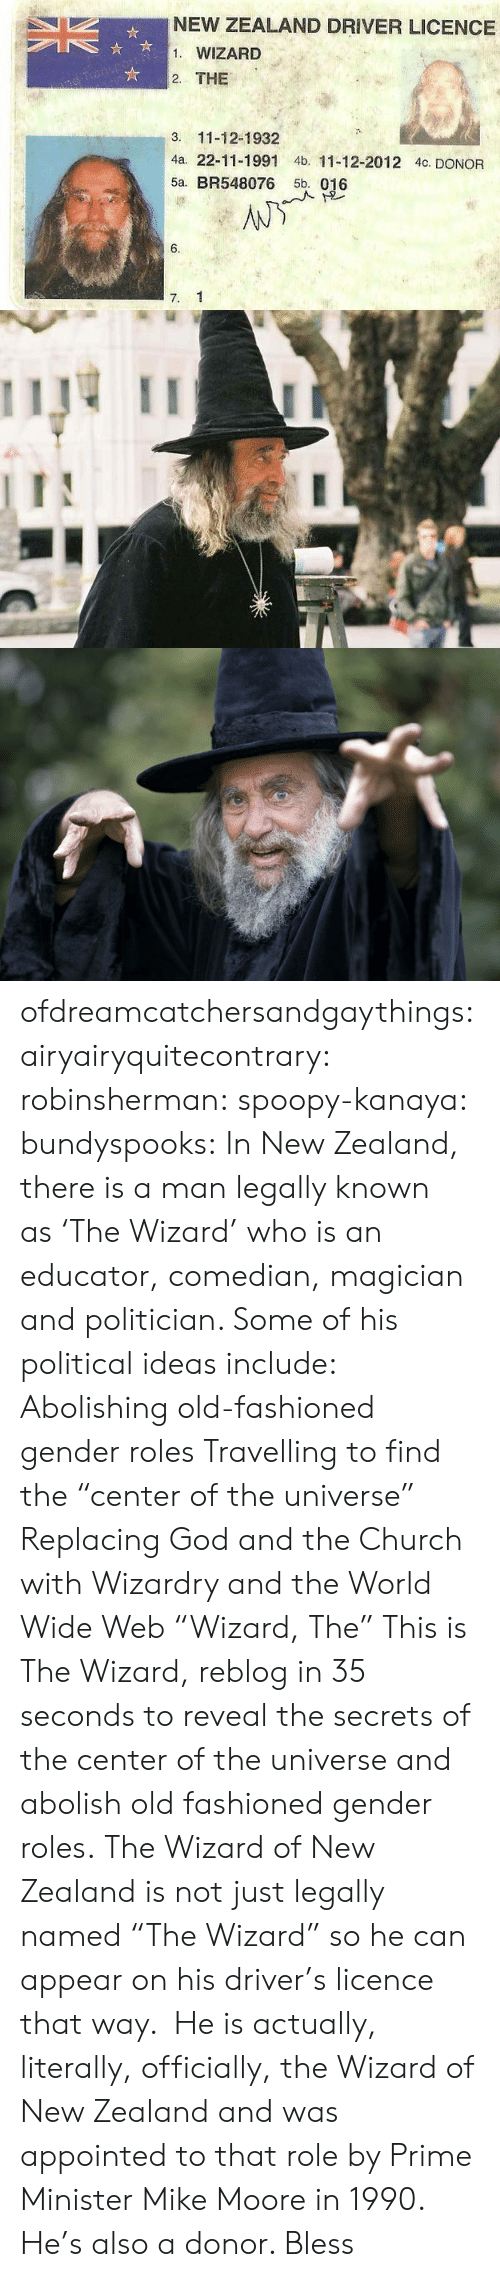 """Educator: NEW ZEALAND DRIVER LICENCE  1. WIZARD  2. THE  3. 11-12-1932  4a. 22-11-1991 4b. 11-12-2012 4c. DONOR  5a. BR548076 5b. 016  6.  7. 1 ofdreamcatchersandgaythings:  airyairyquitecontrary:  robinsherman:  spoopy-kanaya:  bundyspooks:  In New Zealand, there is a man legally known as'The Wizard' whois an educator, comedian, magician and politician. Some of his political ideas include: Abolishing old-fashioned gender roles Travelling to find the """"center of the universe"""" Replacing God and the Church with Wizardry and the World Wide Web  """"Wizard, The""""  This is The Wizard, reblog in 35 seconds to reveal the secrets of the center of the universe and abolish old fashioned gender roles.  The Wizard of New Zealand is not just legally named""""The Wizard"""" so he can appear on his driver's licence that way. He is actually, literally, officially, the Wizard of New Zealand and was appointed to that role by Prime Minister Mike Moore in 1990.    He's also a donor. Bless"""